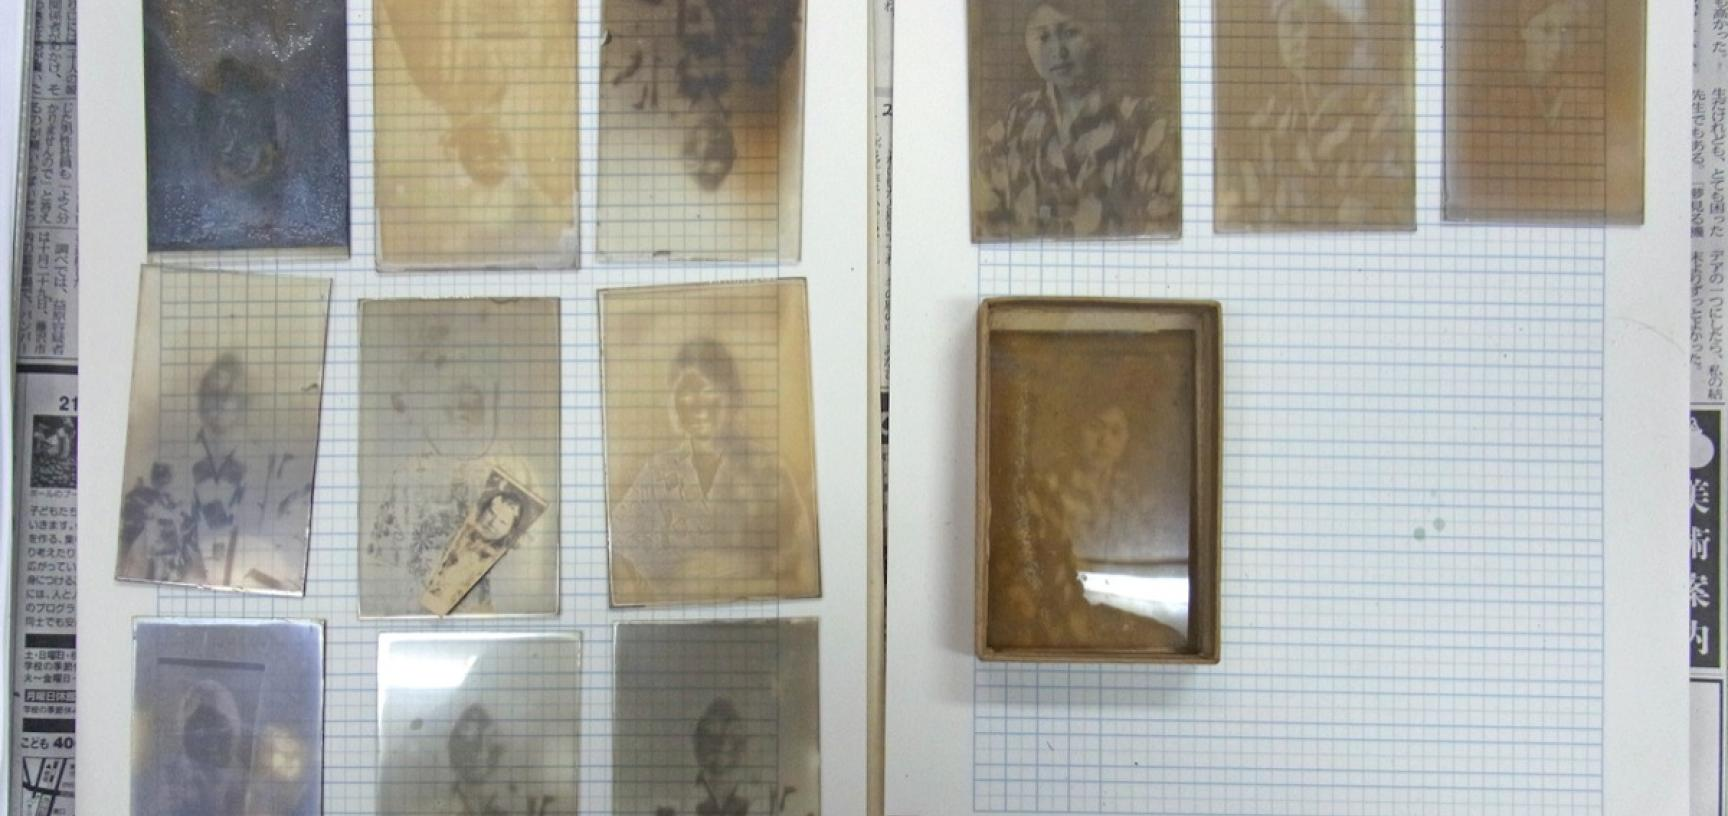 Early twentieth-century glass plates drying in the RD3 Project's workspace. (Copyright RD3 Project/Rikuzentakata City Museum)